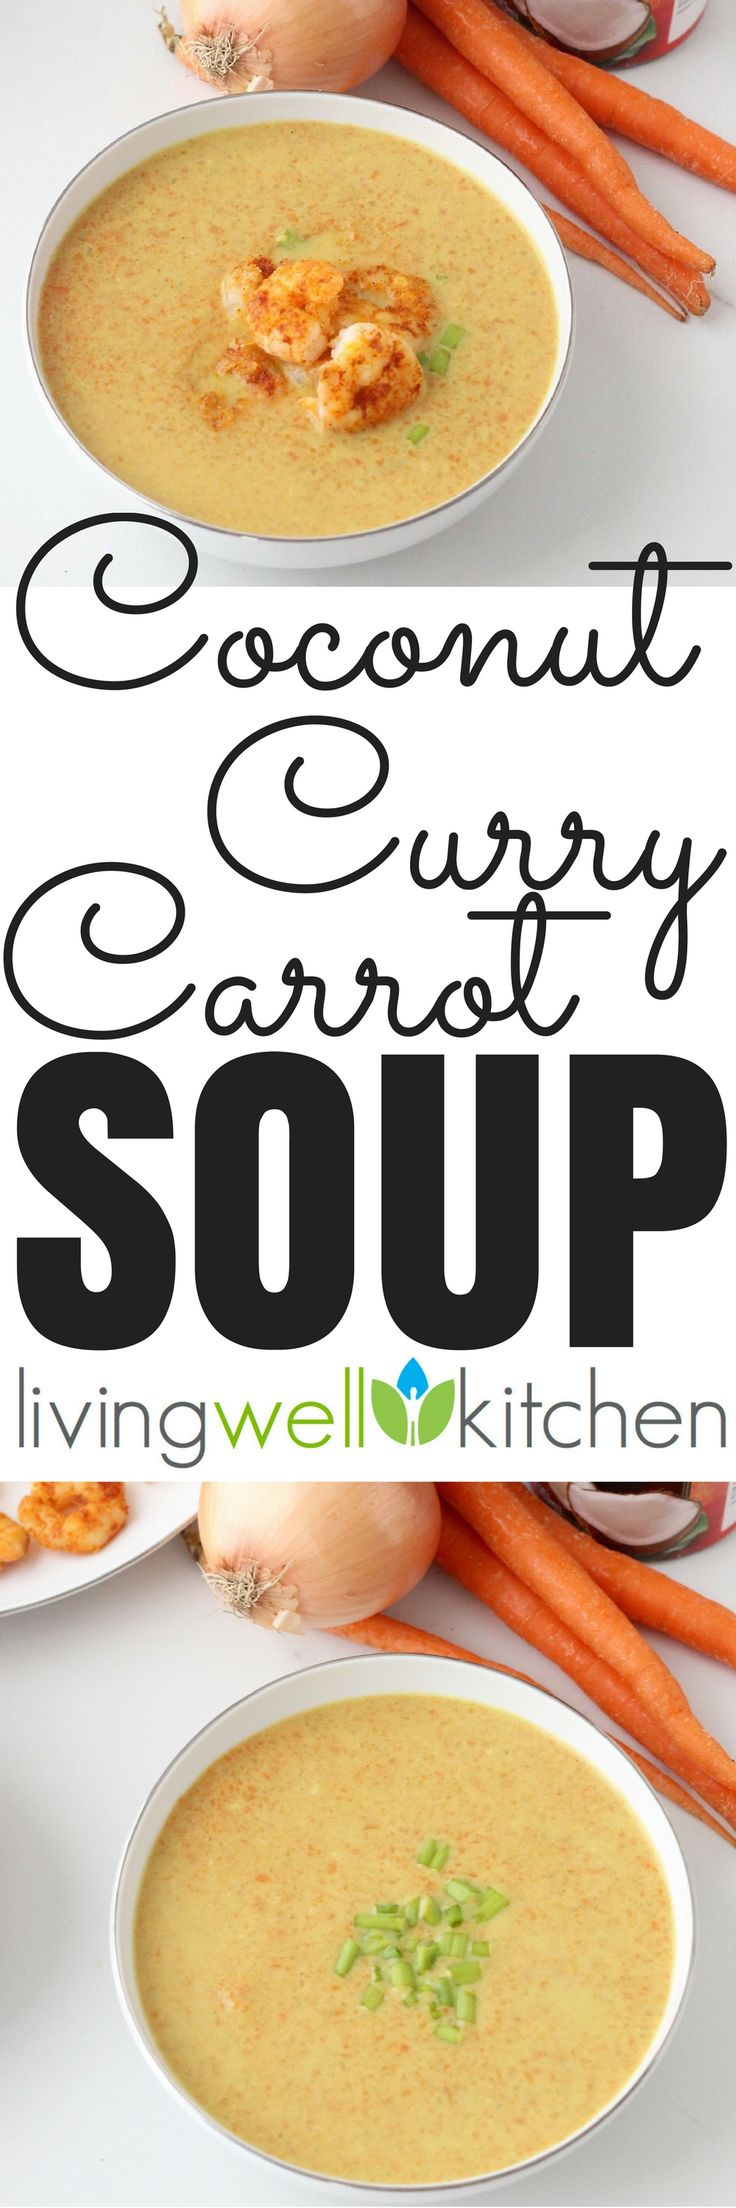 Warming Coconut Curry Carrot Soup from @memeinge, full of veggies, with both sweet and spicy flavors. Customize this healthy, vegan recipe with any toppings you like! One of my favorite dinner recipes. #dinnerrecipes #healthydinnerrecipes #soup #souprecipes #coconut #carrot